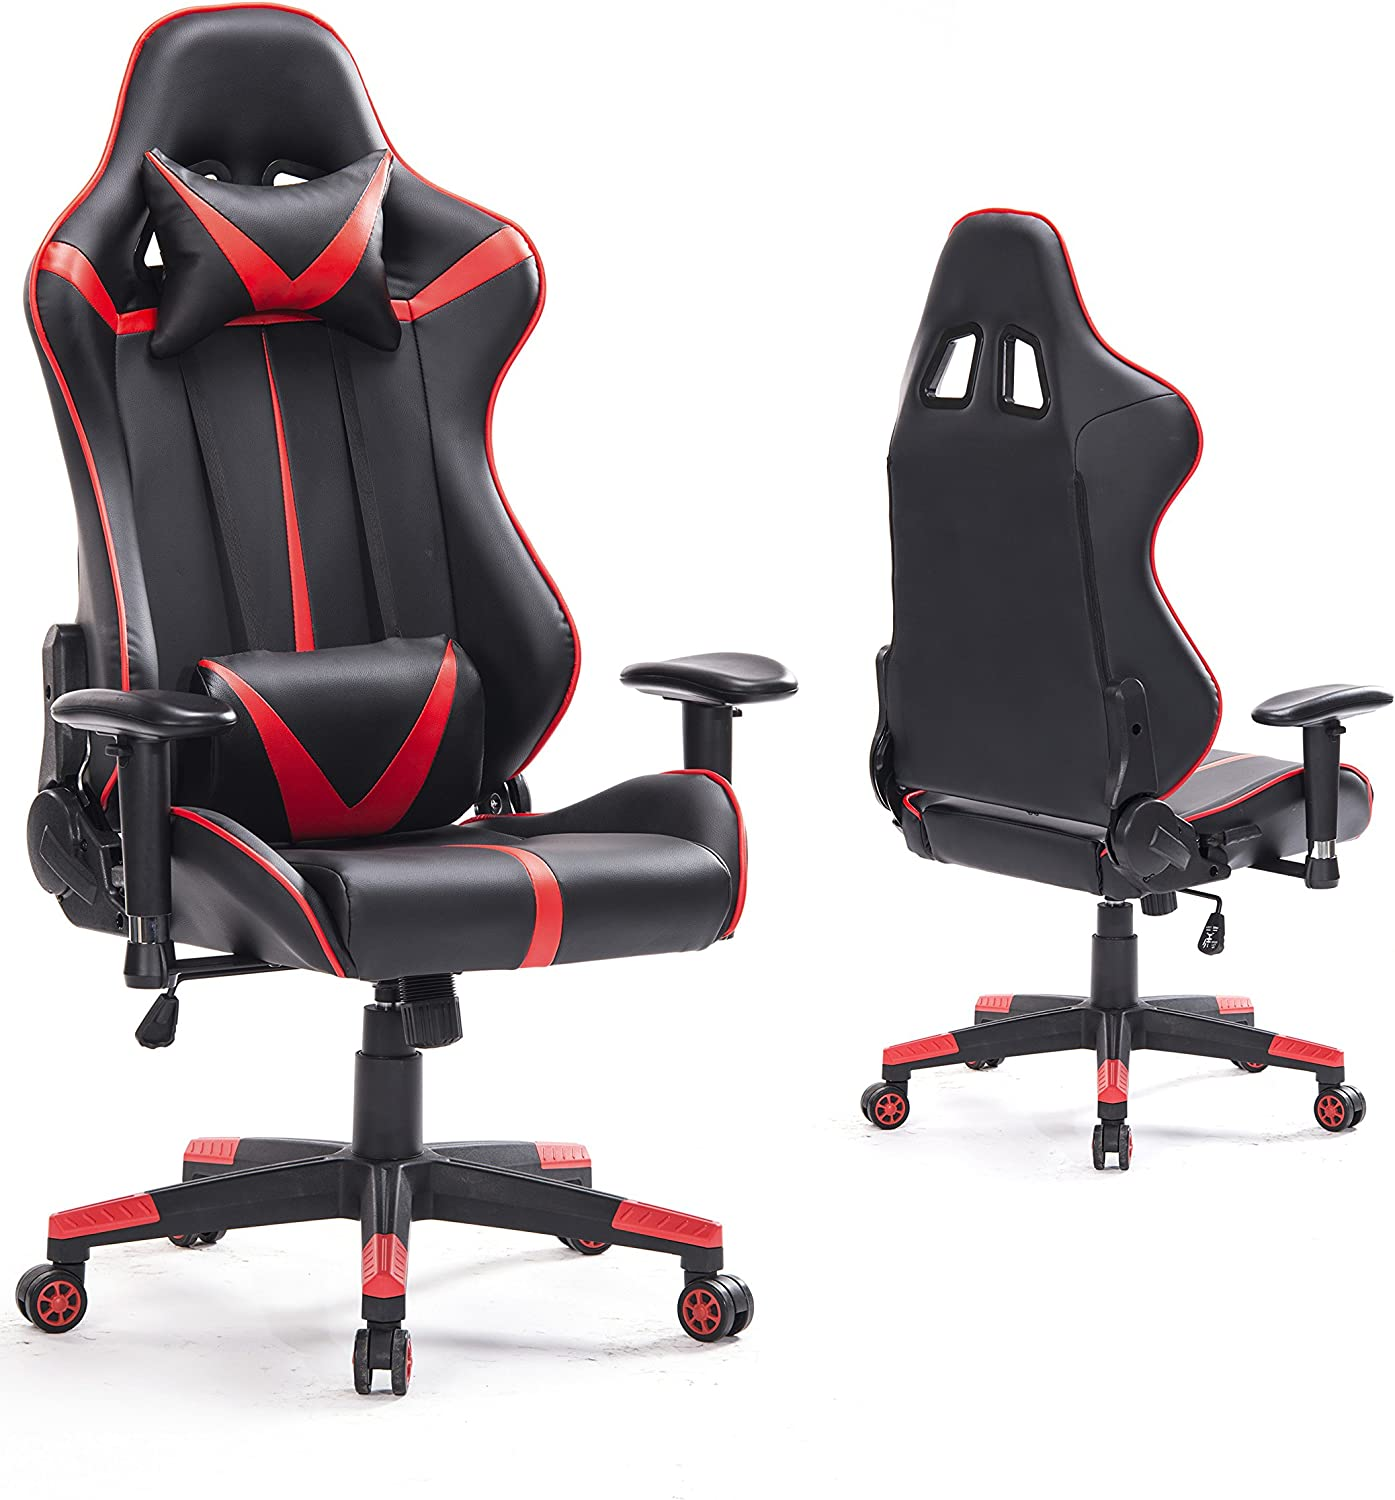 Top Gamer Racing Gaming Chair PC Computer Game Chairs for Video Game (Red Black)